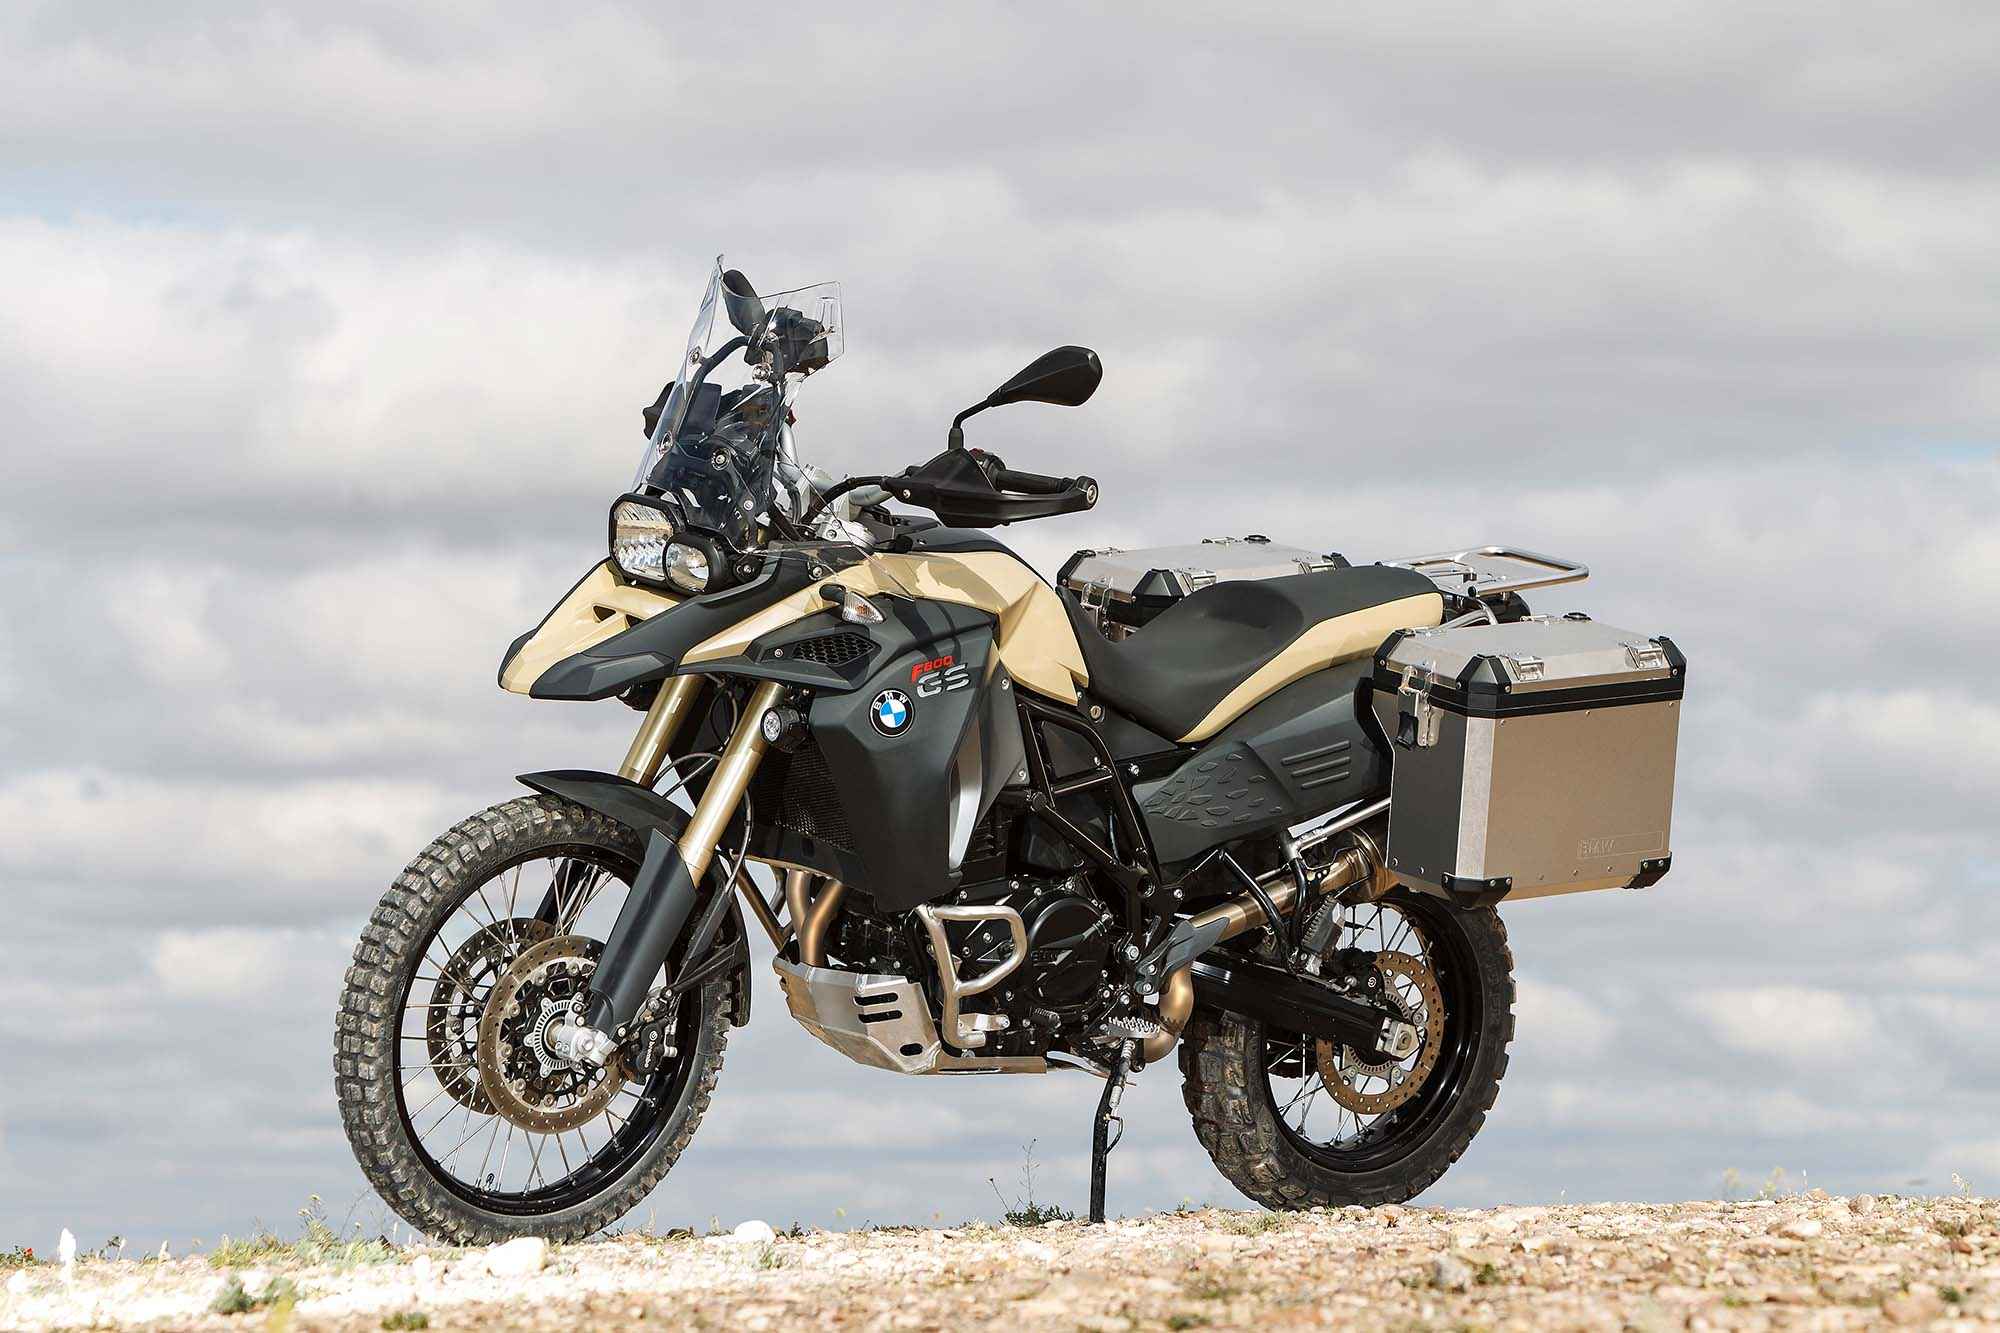 The new BMW F800GS Adventure